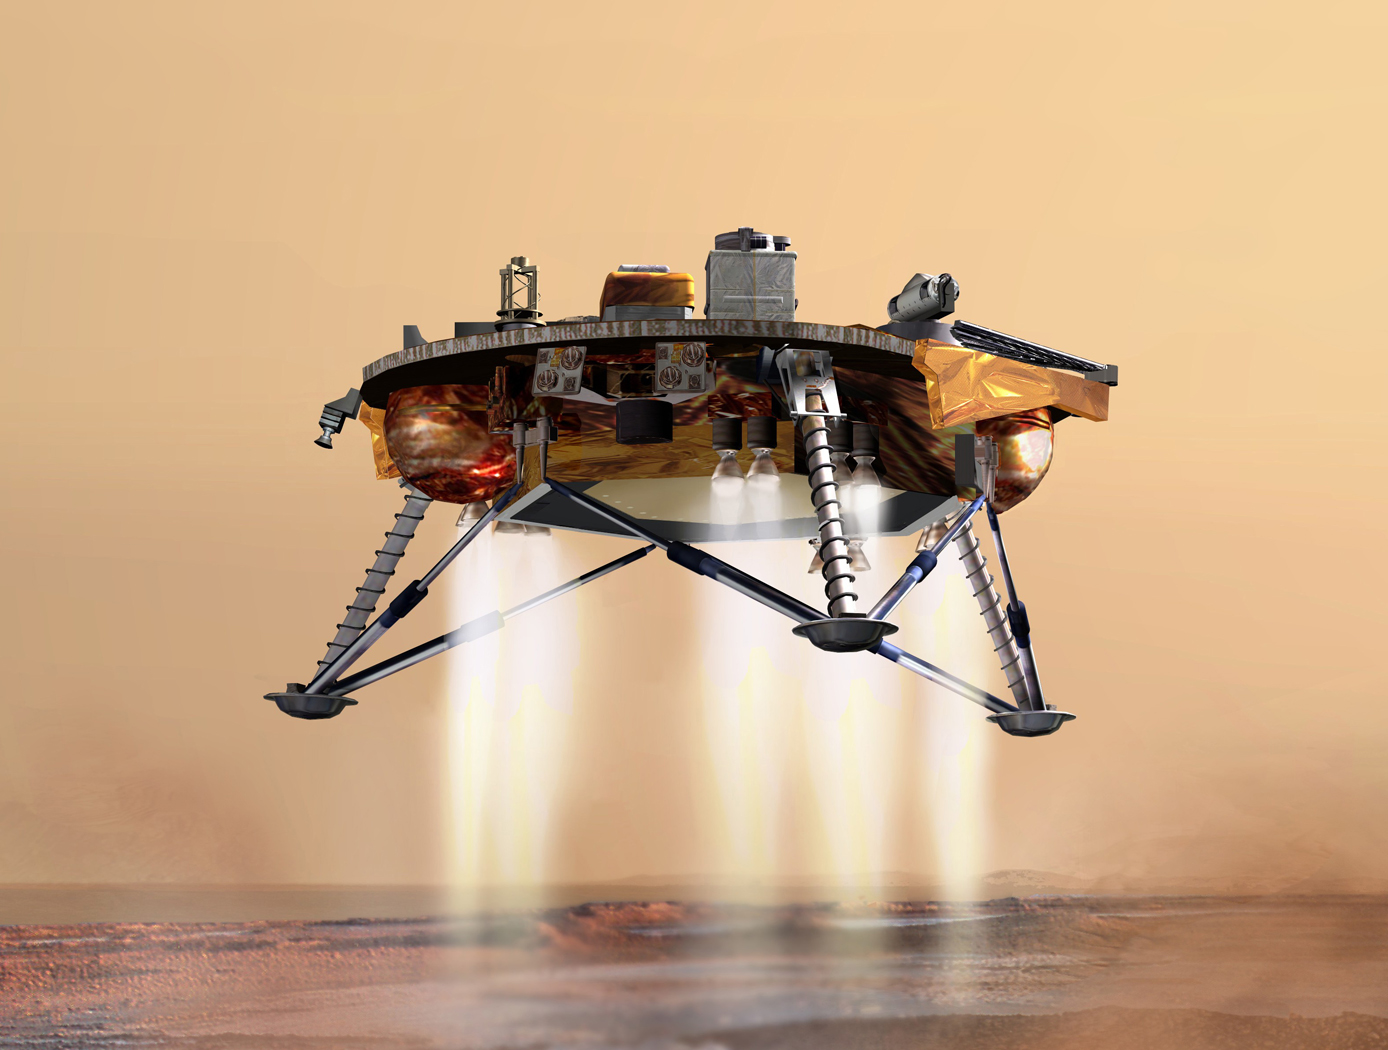 Laser Linear Frequency Modulation System Superlinear Fm Modulator Vehicle Landing On Mars